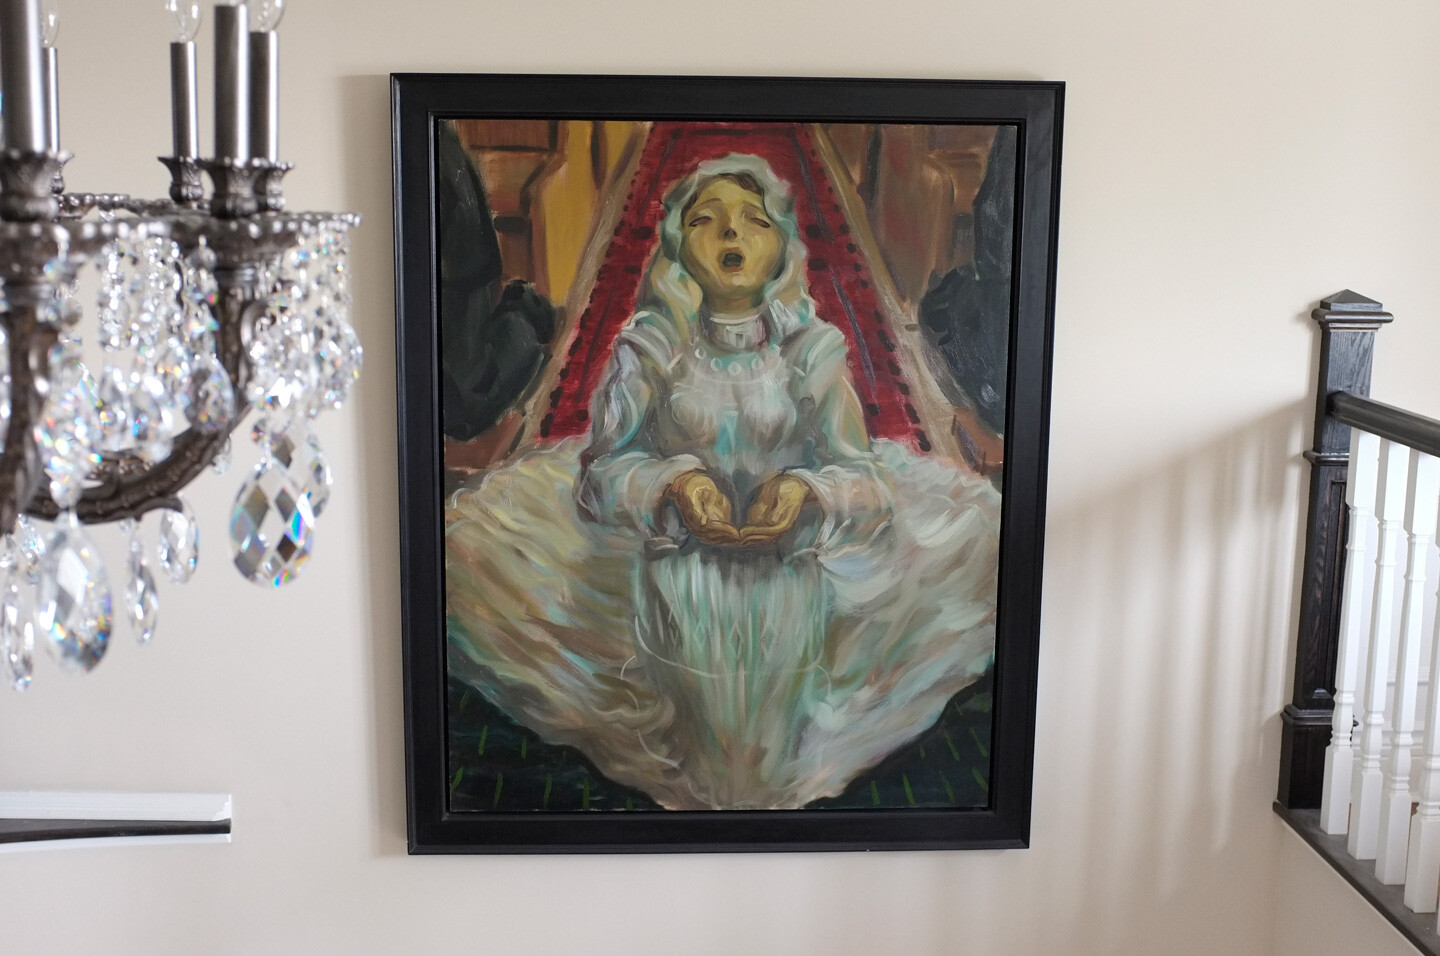 THE FIRST COMMUNION, painted by Vince Mancuso in 1990, oil on canvas 4x5 feet, private collection.